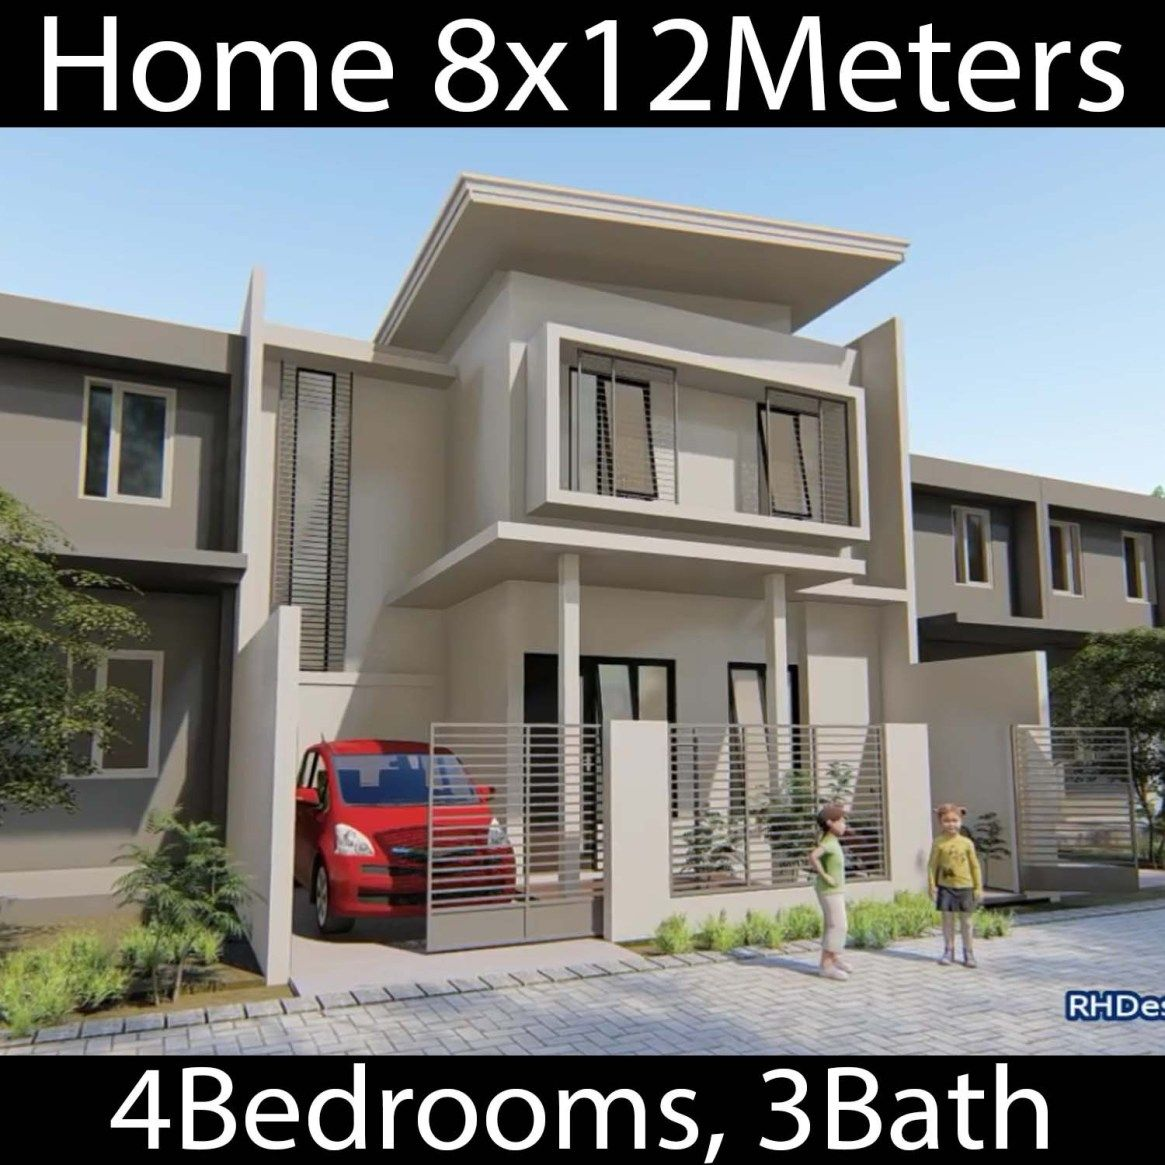 Home Design Plan 8x12m With 4 Bedrooms Home Design With Plansearch Home Design Plan House Design Minimalist House Design